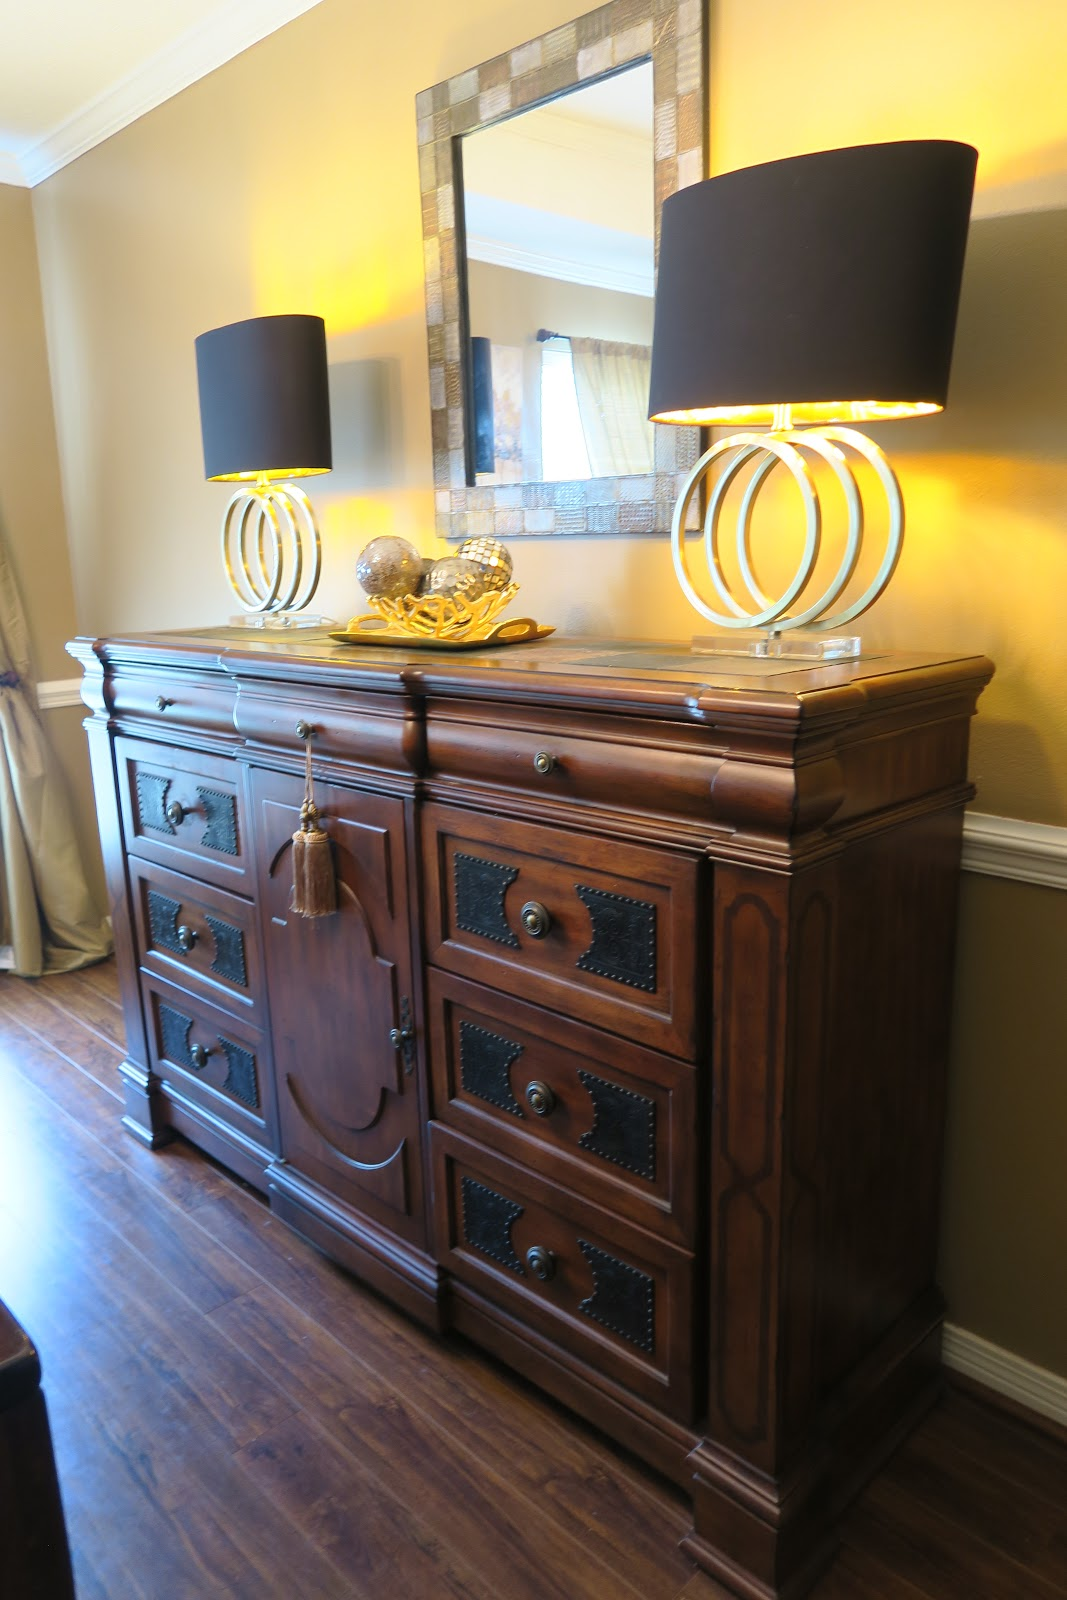 When Looking For A Dining Room Hutch Make Sure It Has Plenty Of Storage And That Is One Feature I Love About This There Are Nine Drawers In Total